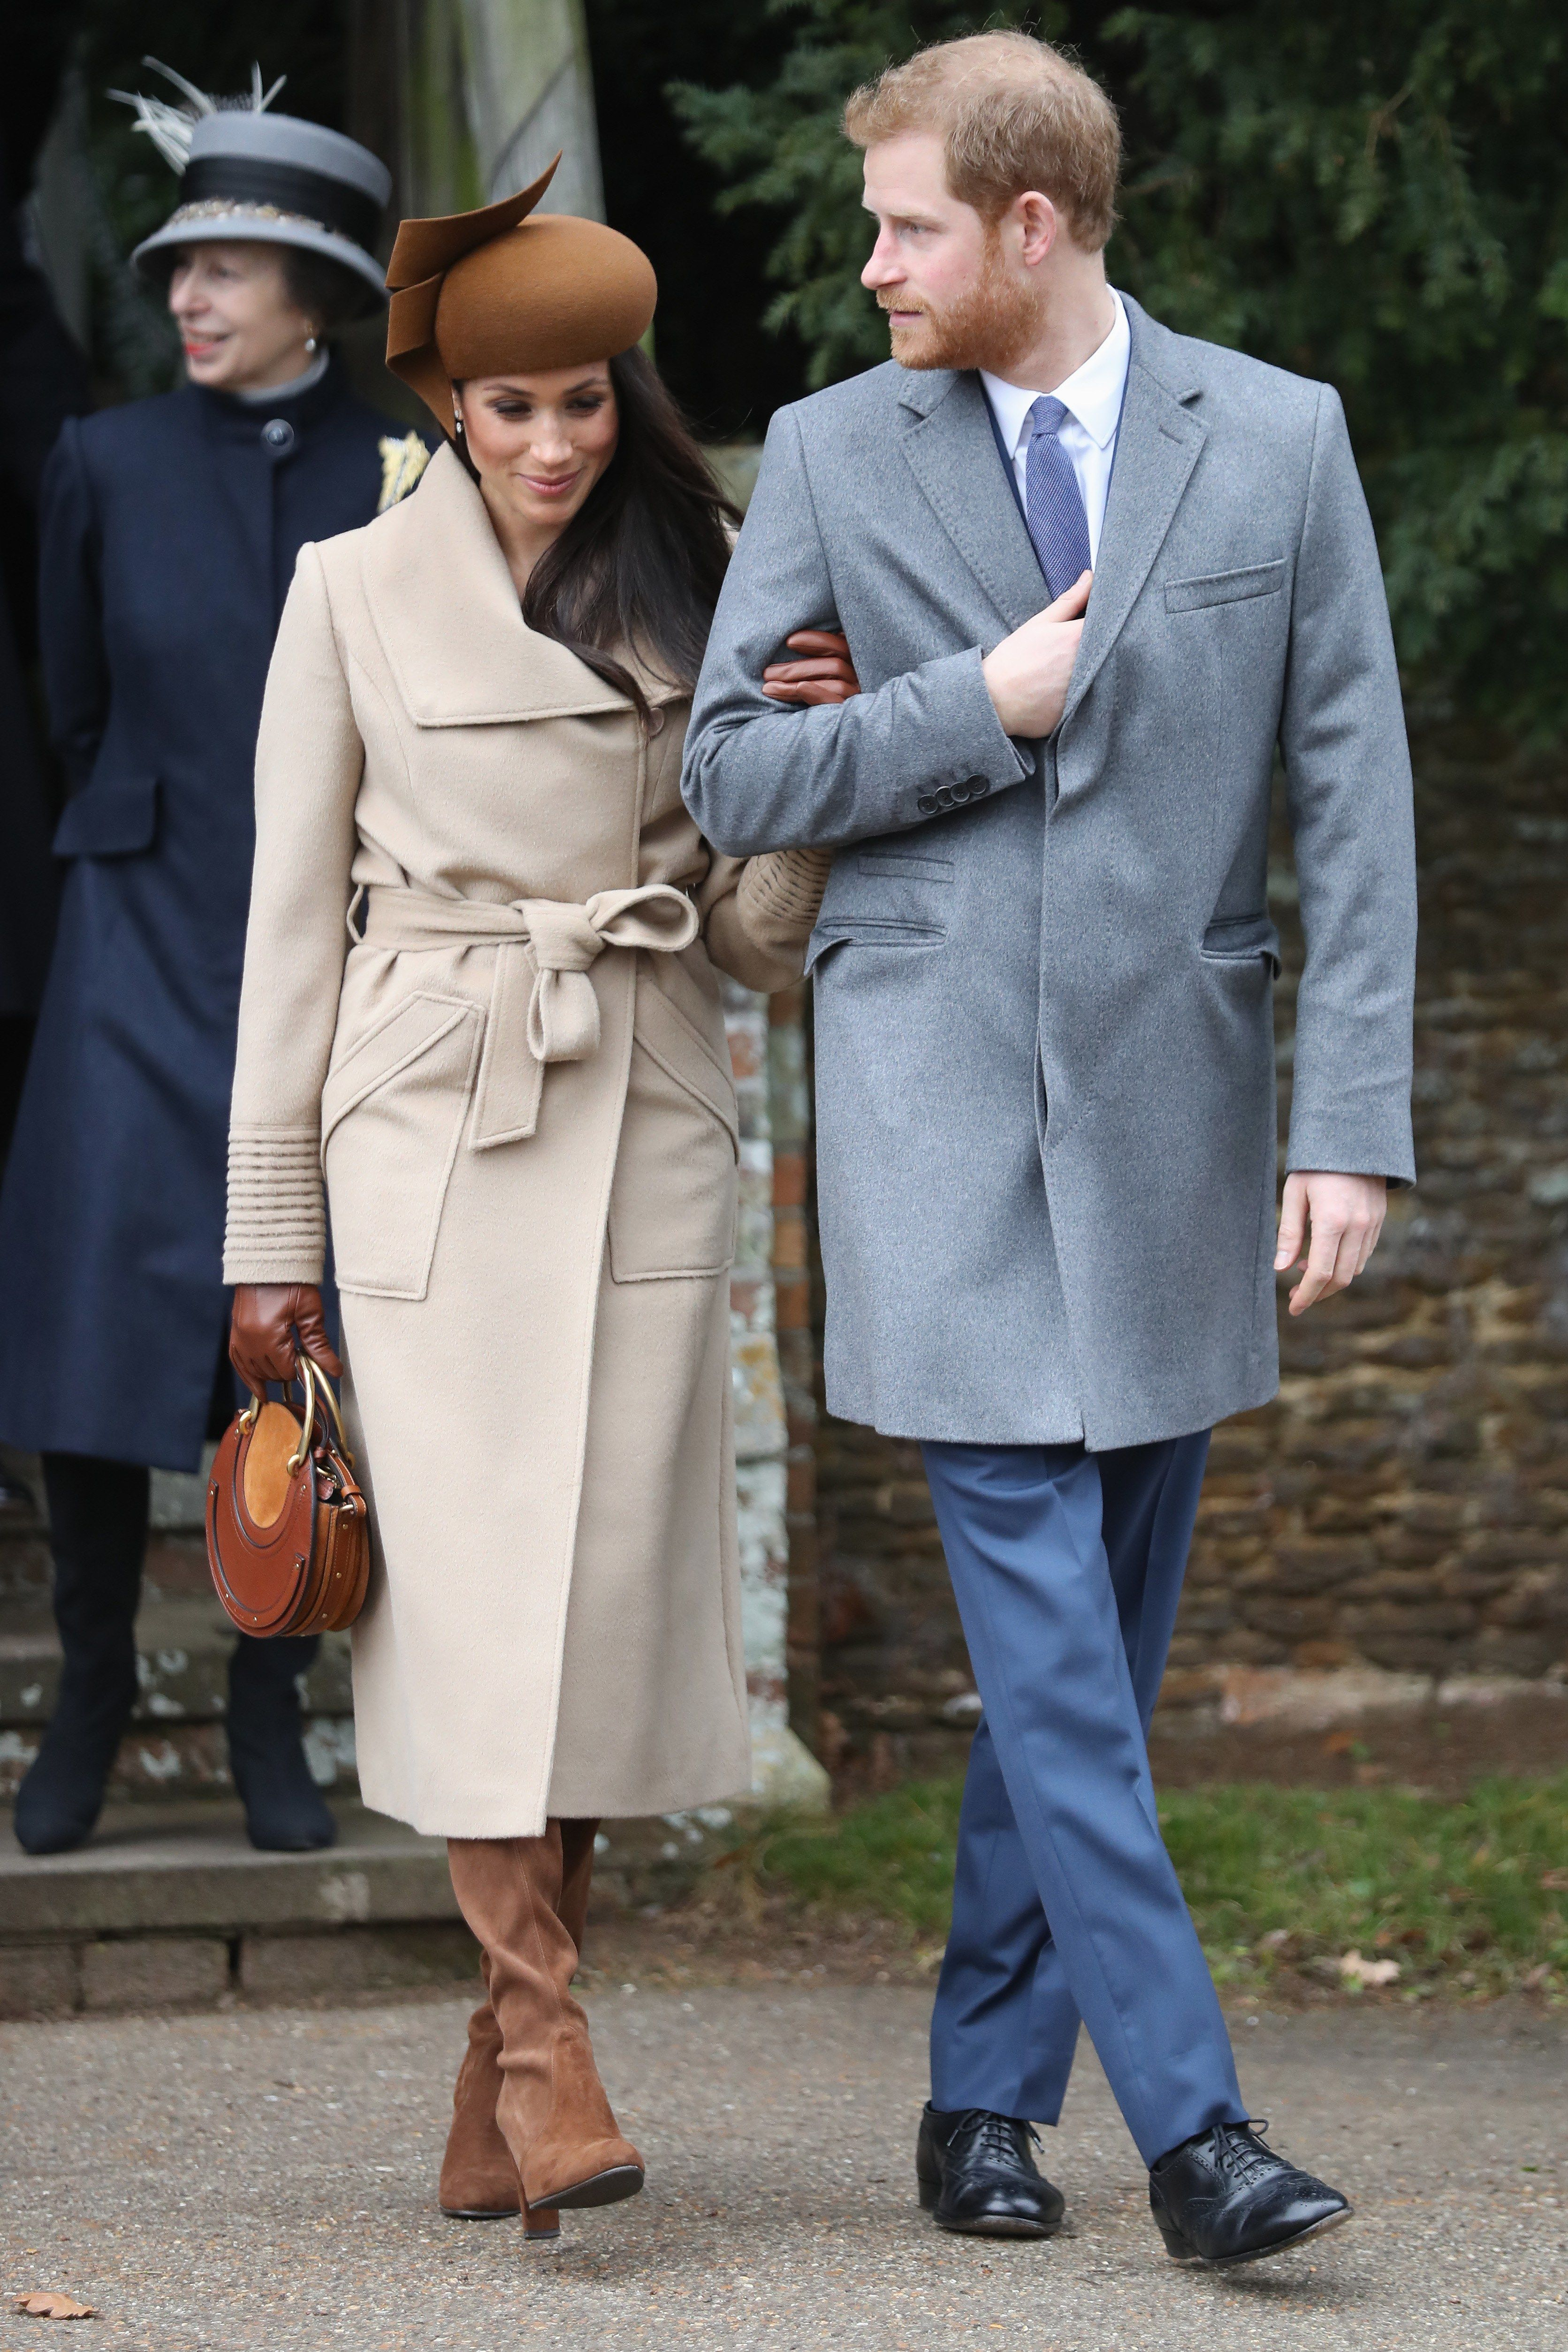 Members Of The Royal Family Attend St Mary Magdalene Church In Sandringham c963b2bd20a5